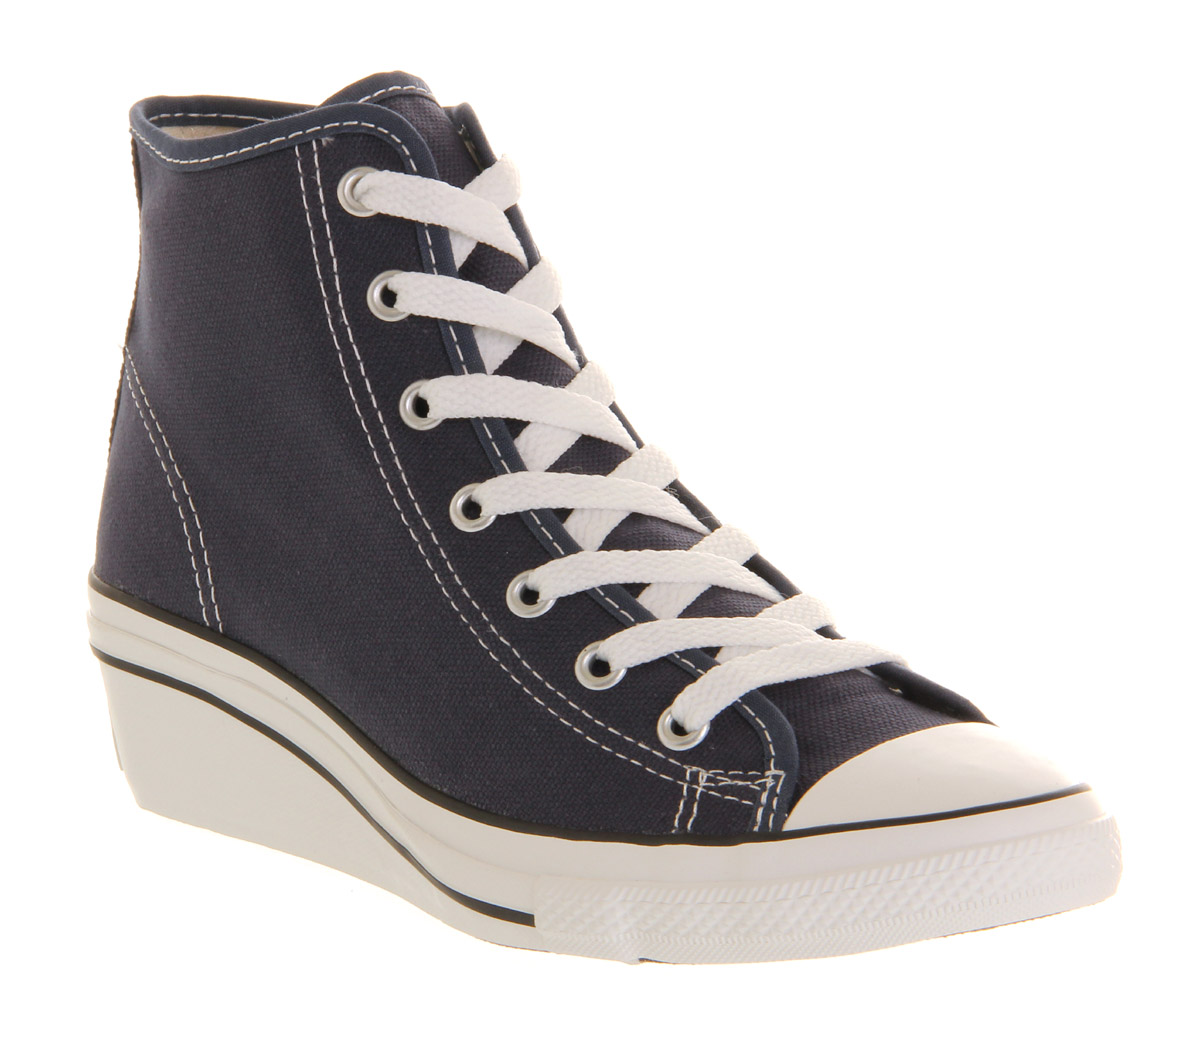 Womens-Converse-All-Star-Hi-ness-Navy-Trainers-Shoes